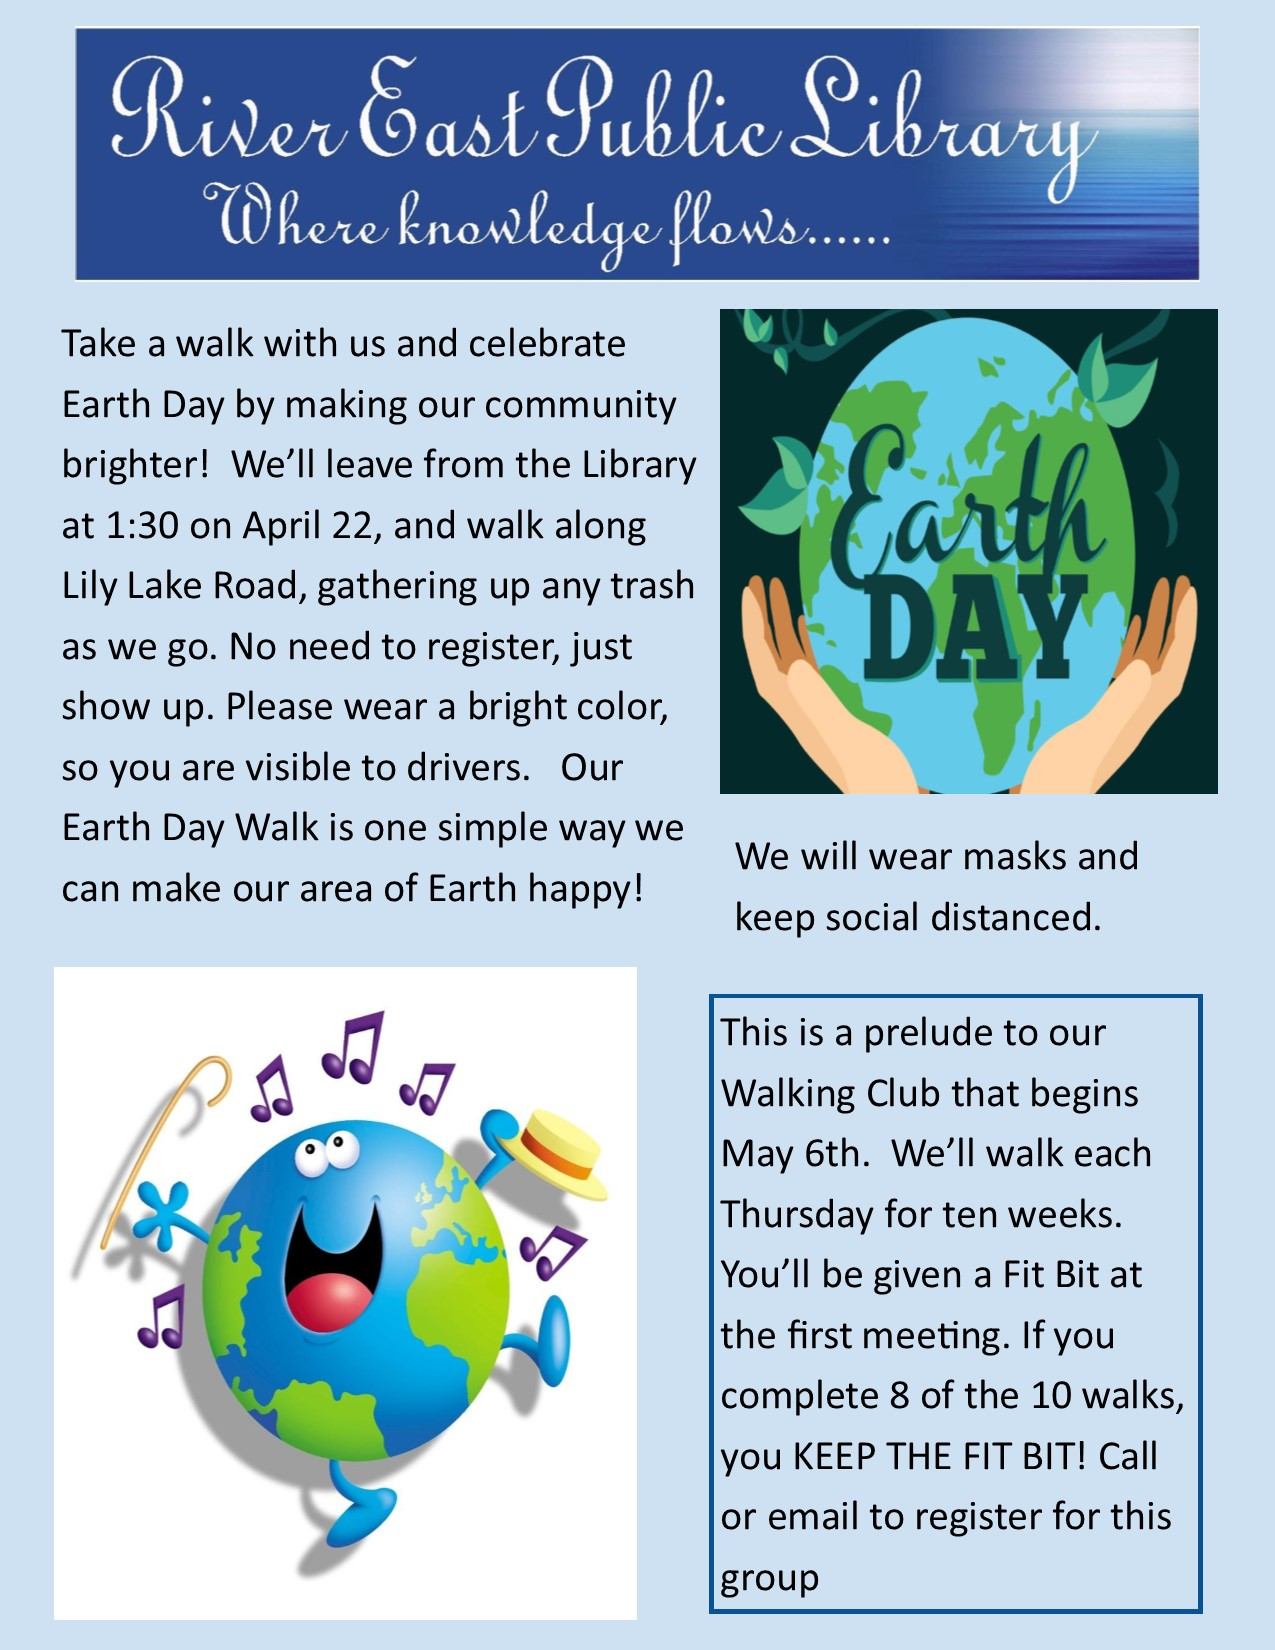 Image showing a poster with a pair of hands cupping the earth, and text about Earth Day